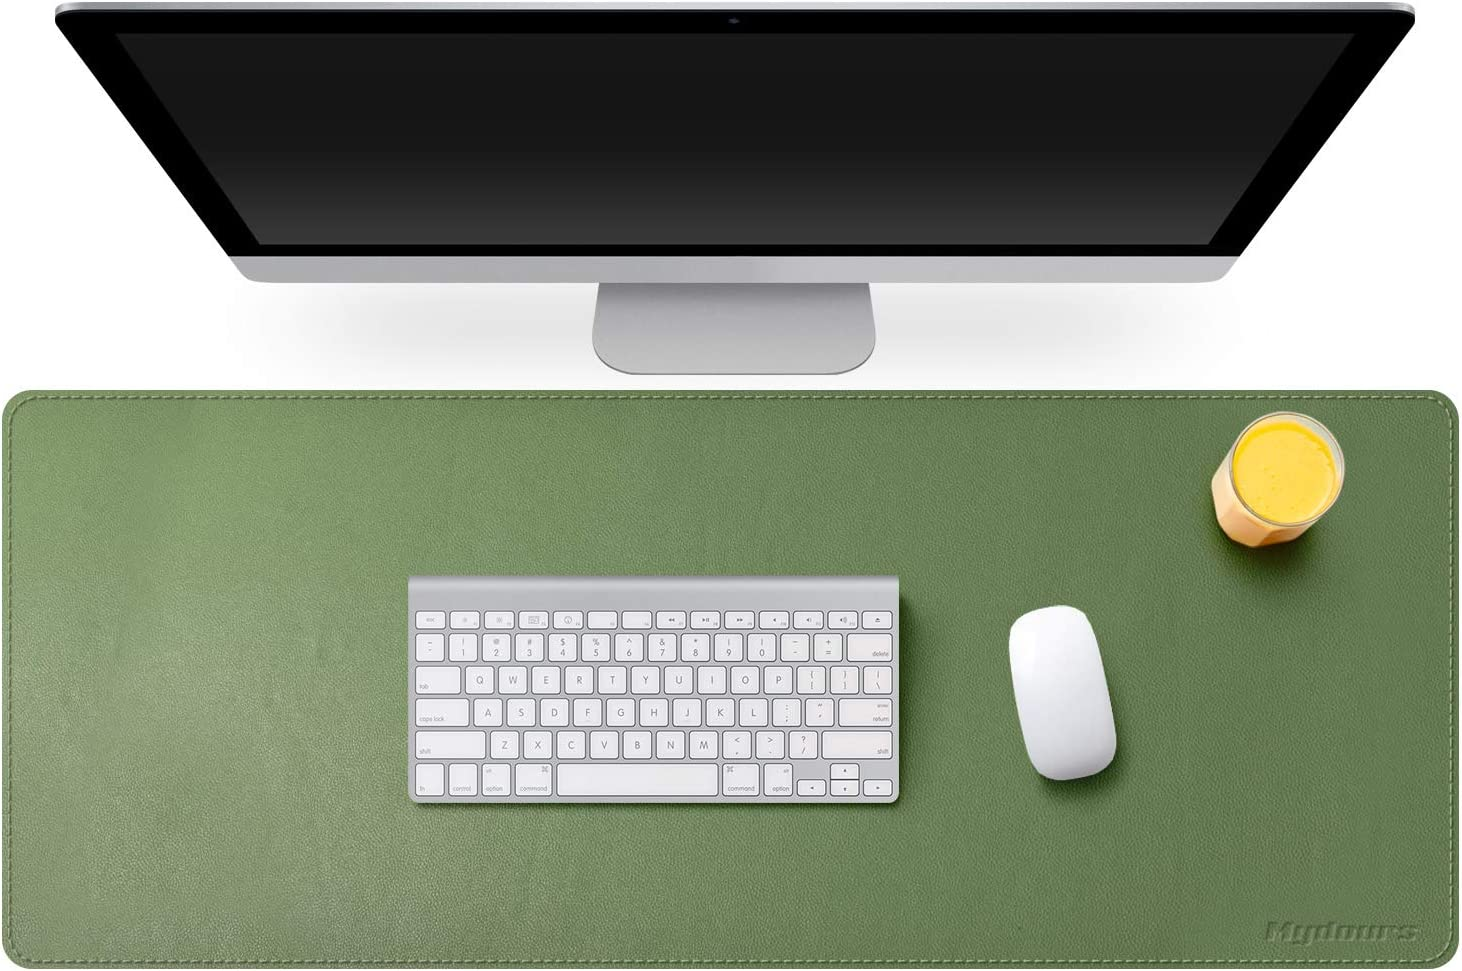 """Mydours Desk Pad - PU Leather Office Desk Mat 37.4""""×15.7"""" XXL Desk Blotter Laptop Keyboard Mat Waterproof Dual Use Writing Pad Mouse Pad for Office and Home (Green)"""